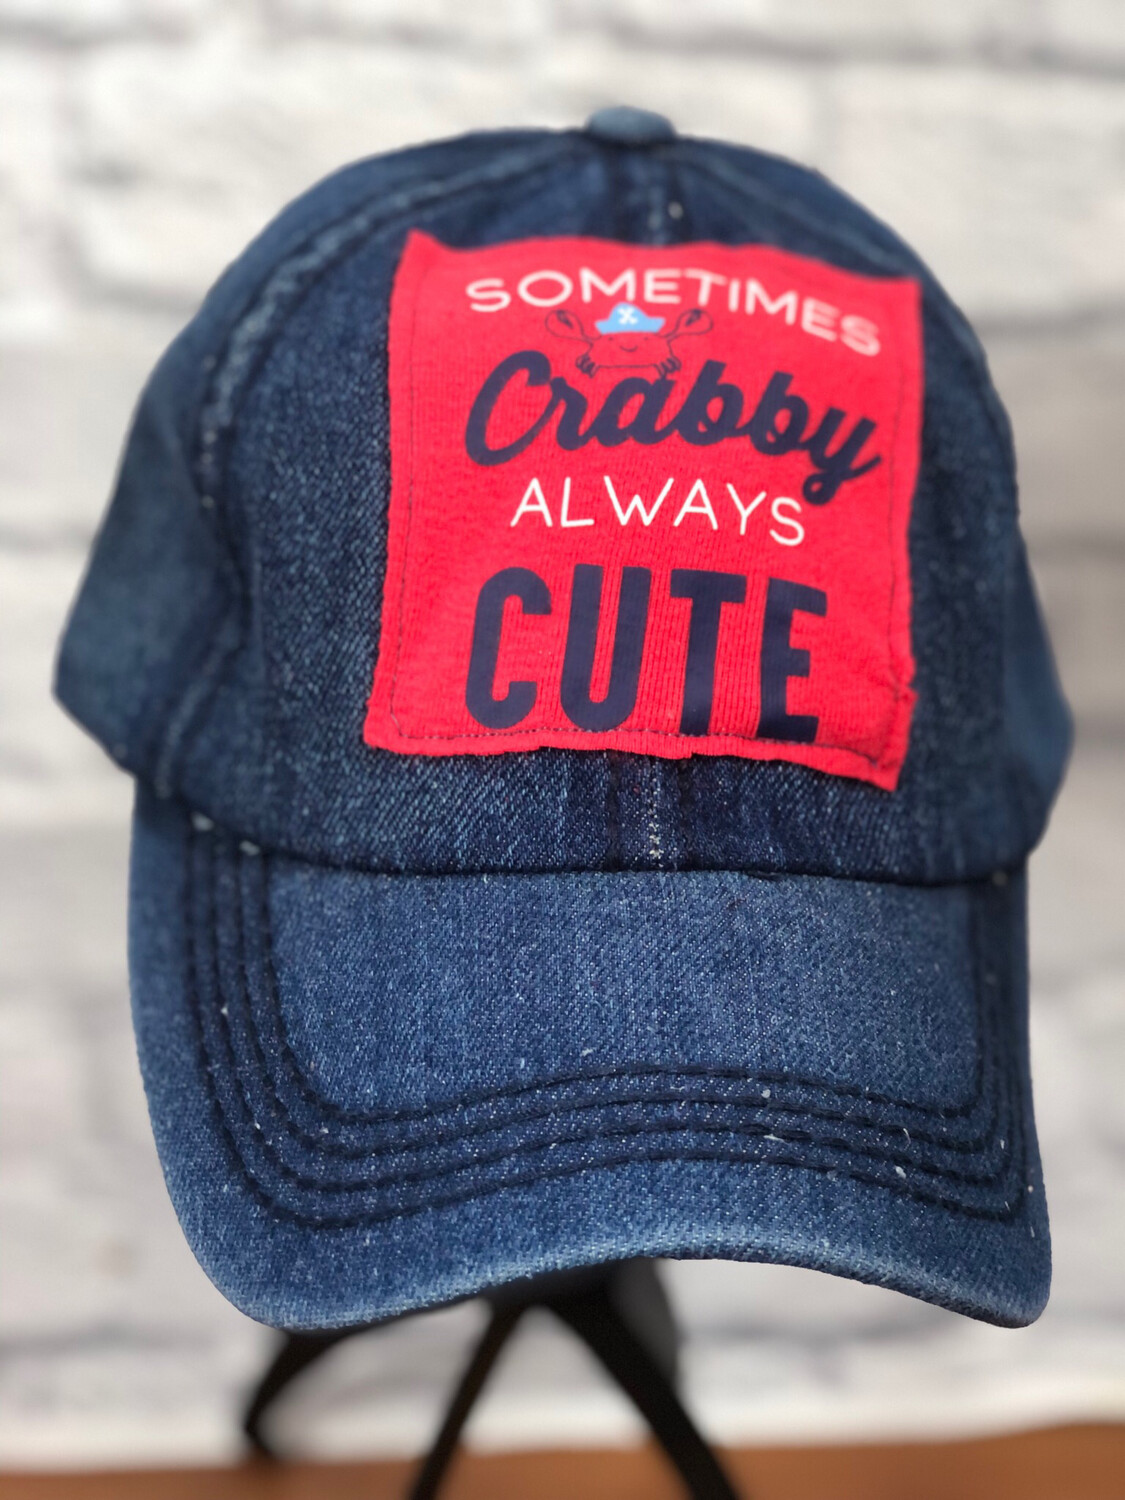 Jean Hat Upcycled Sometimes Crabby OS